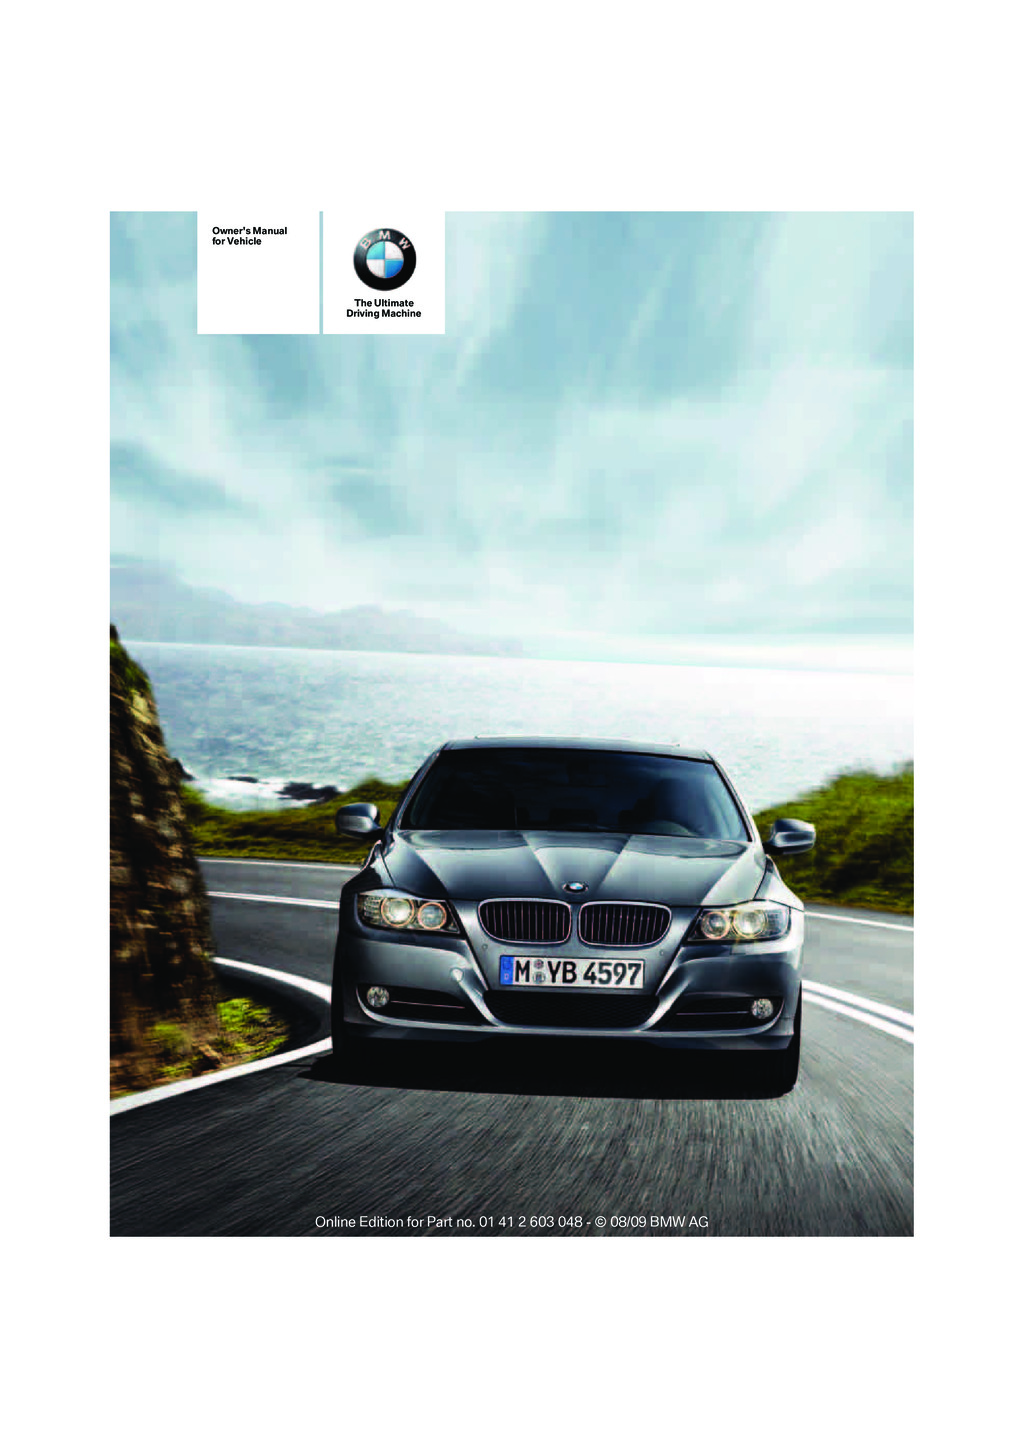 2010 BMW 3 Sedan And Sportswagon With Idrive owners manual